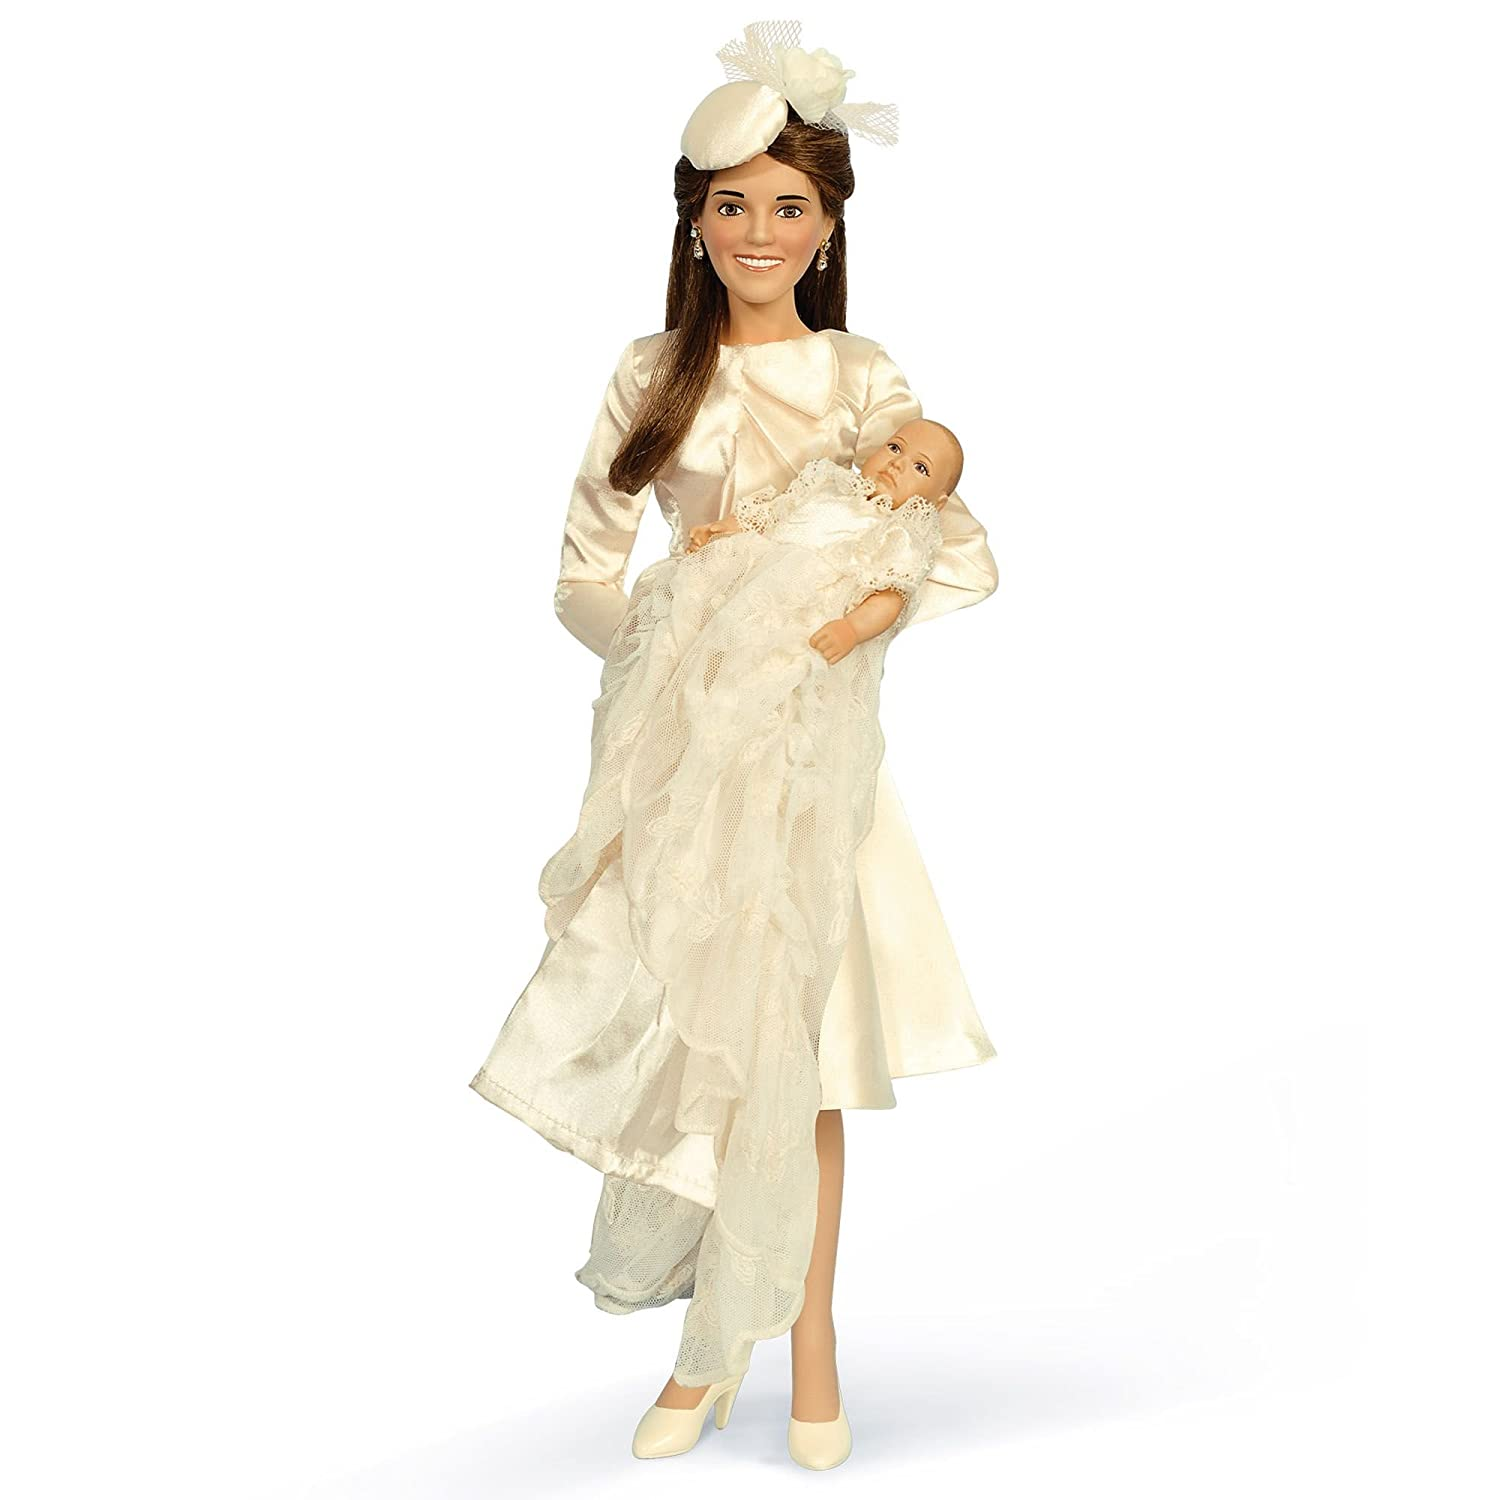 'The Royal Christening' Portrait Doll Set By Ashton Drake